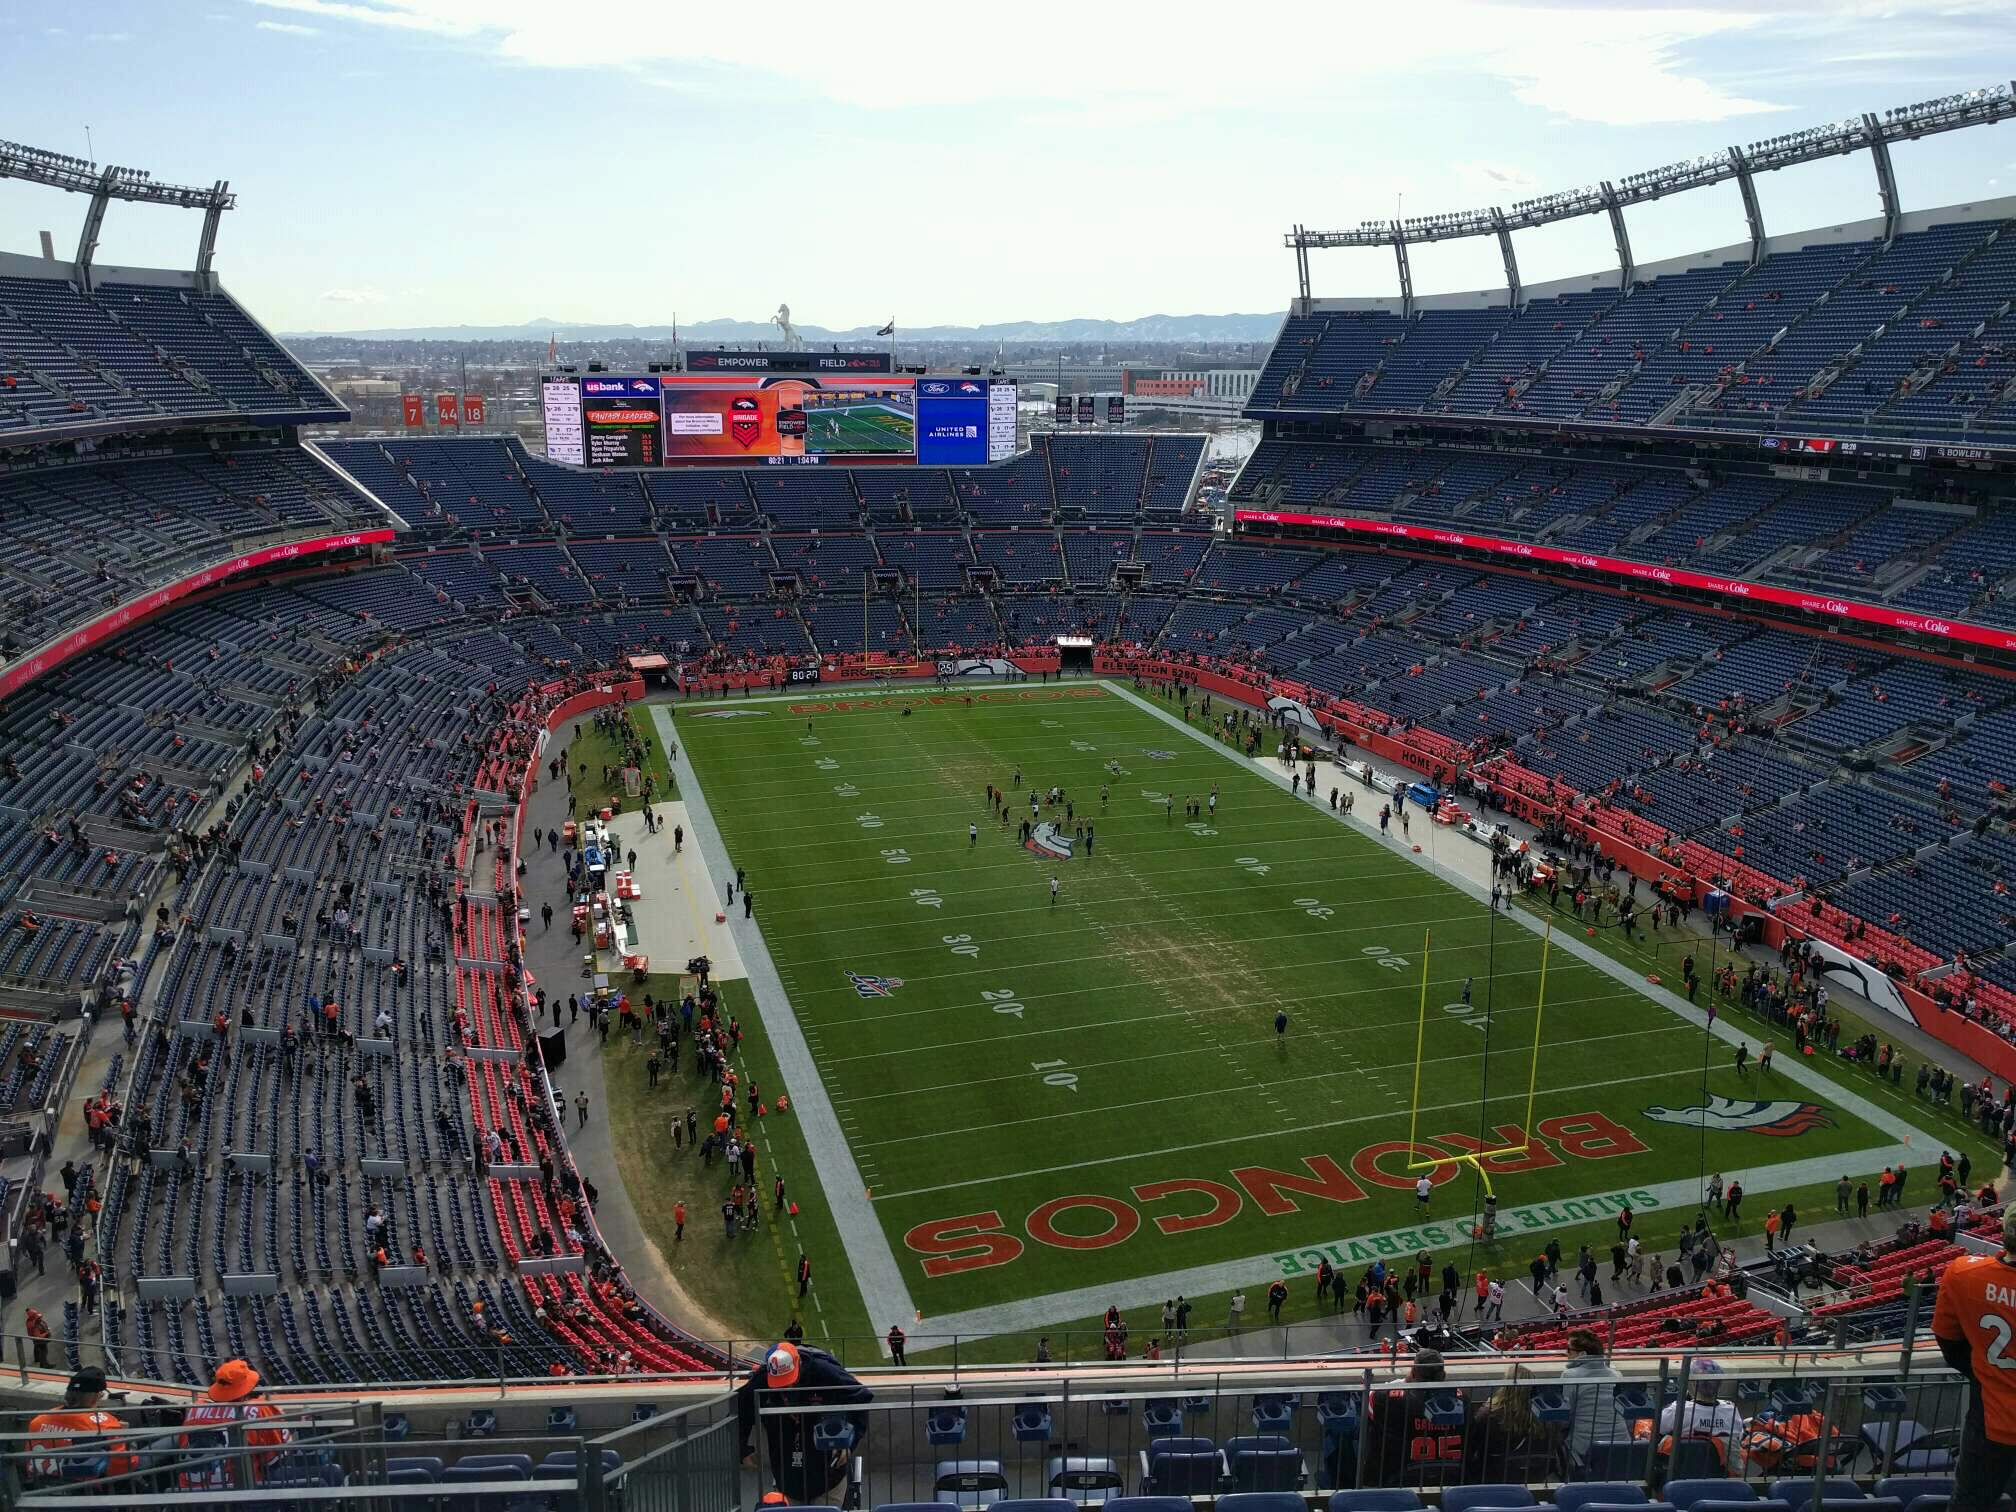 Empower Field at Mile High Stadium Section 524 Row 11 Seat 10